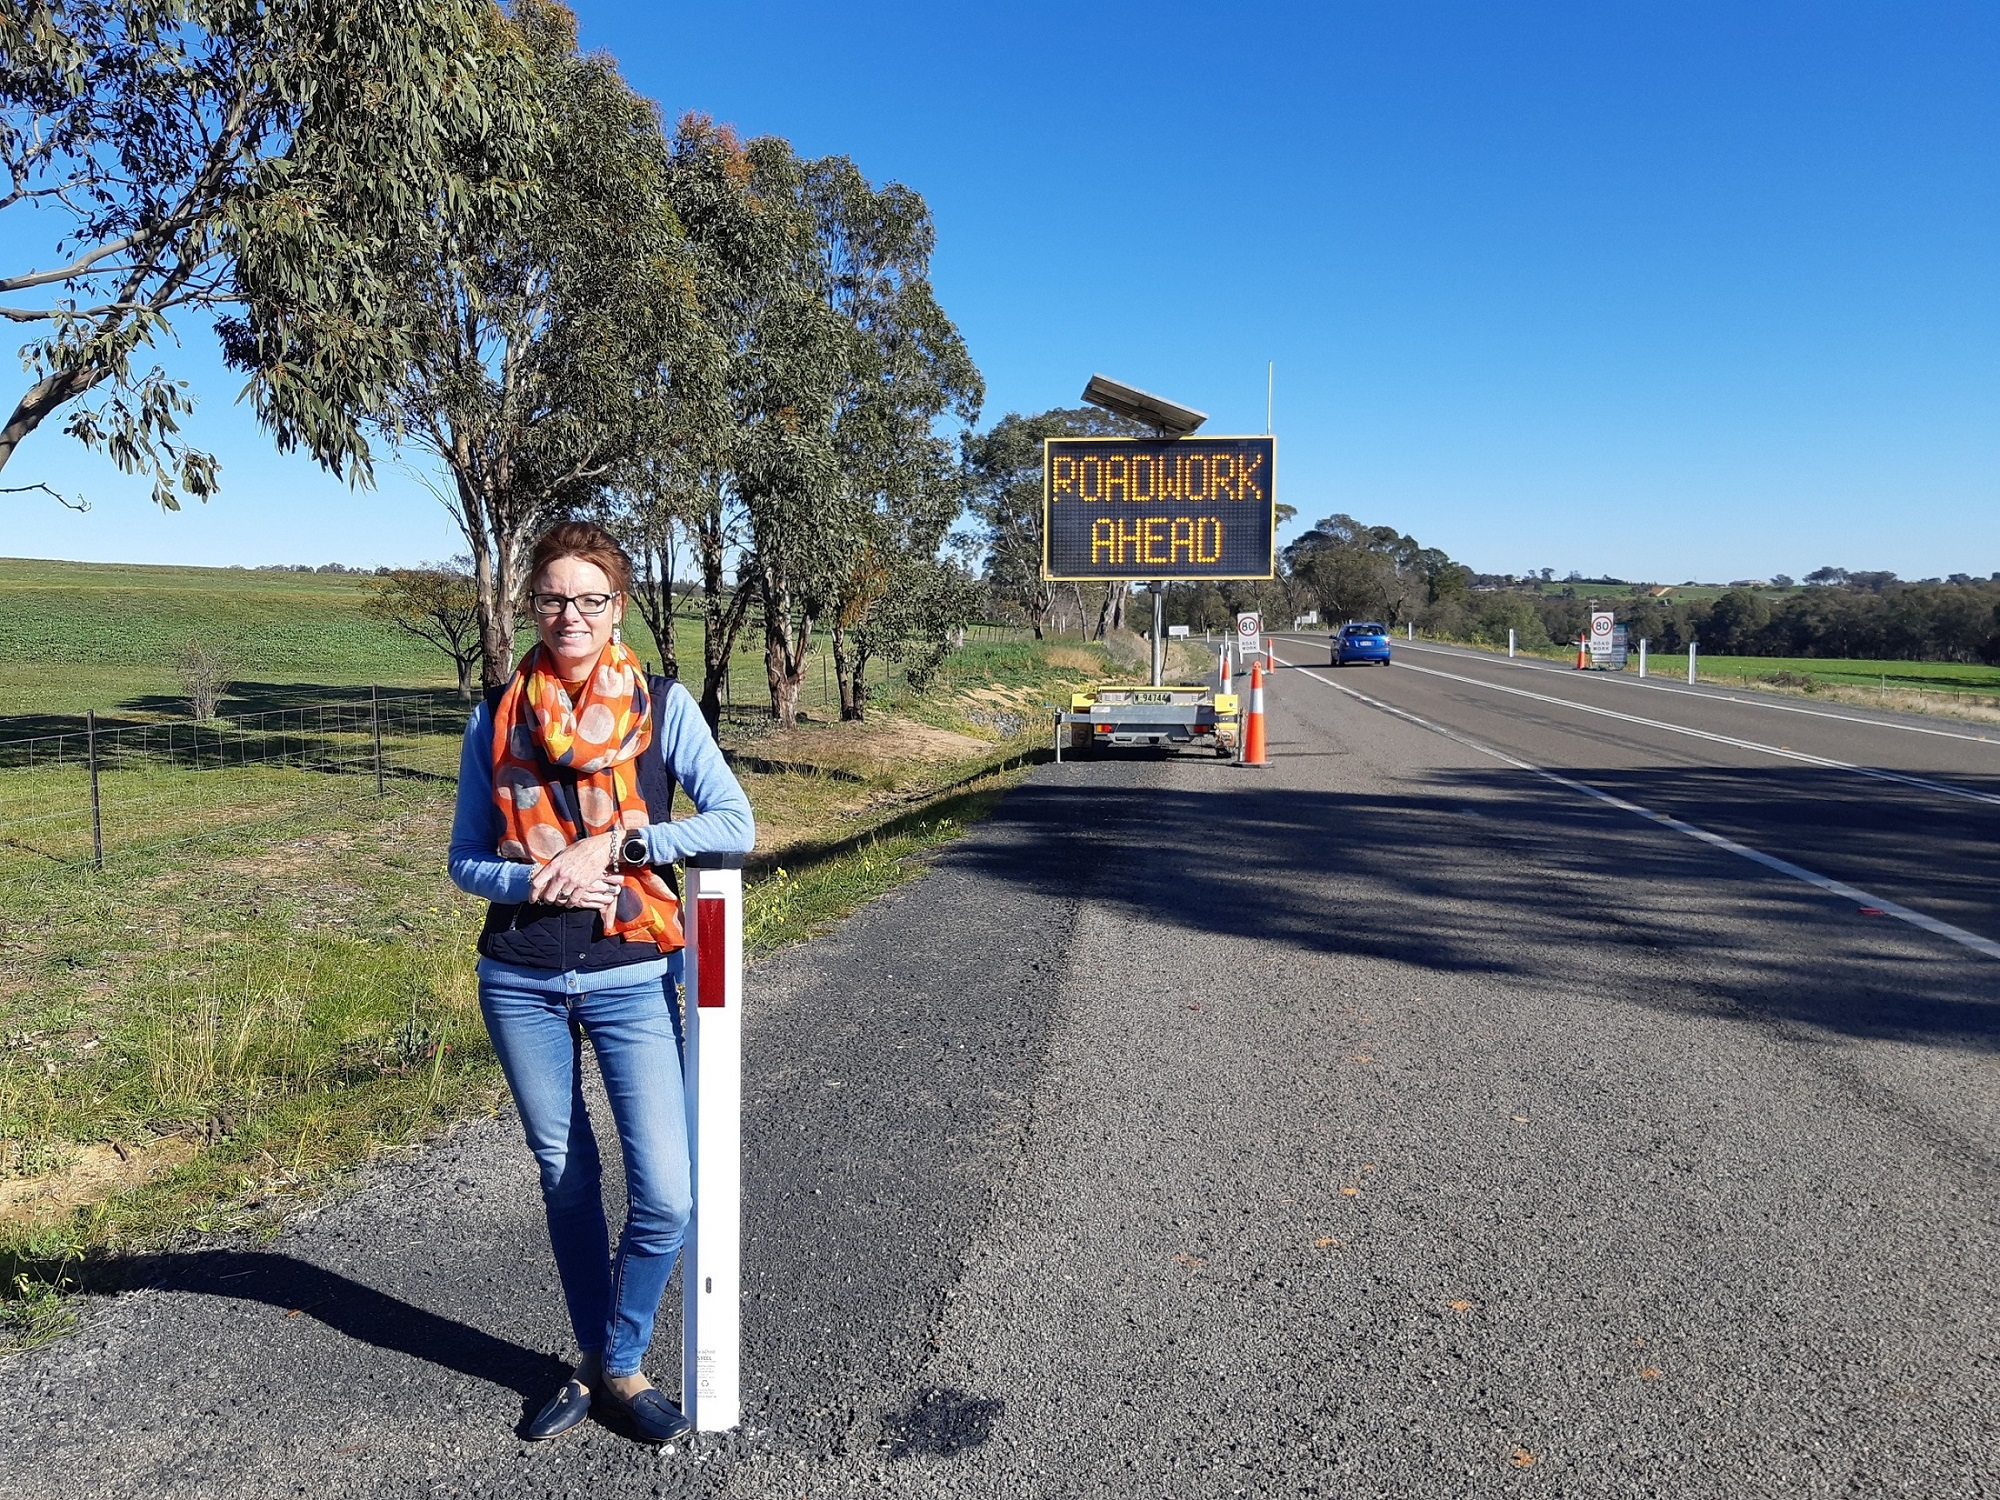 Steph Cooke stands on the side of a road and leans on a guide post. A 'Roadwork Ahead' sign can be seen behind her.